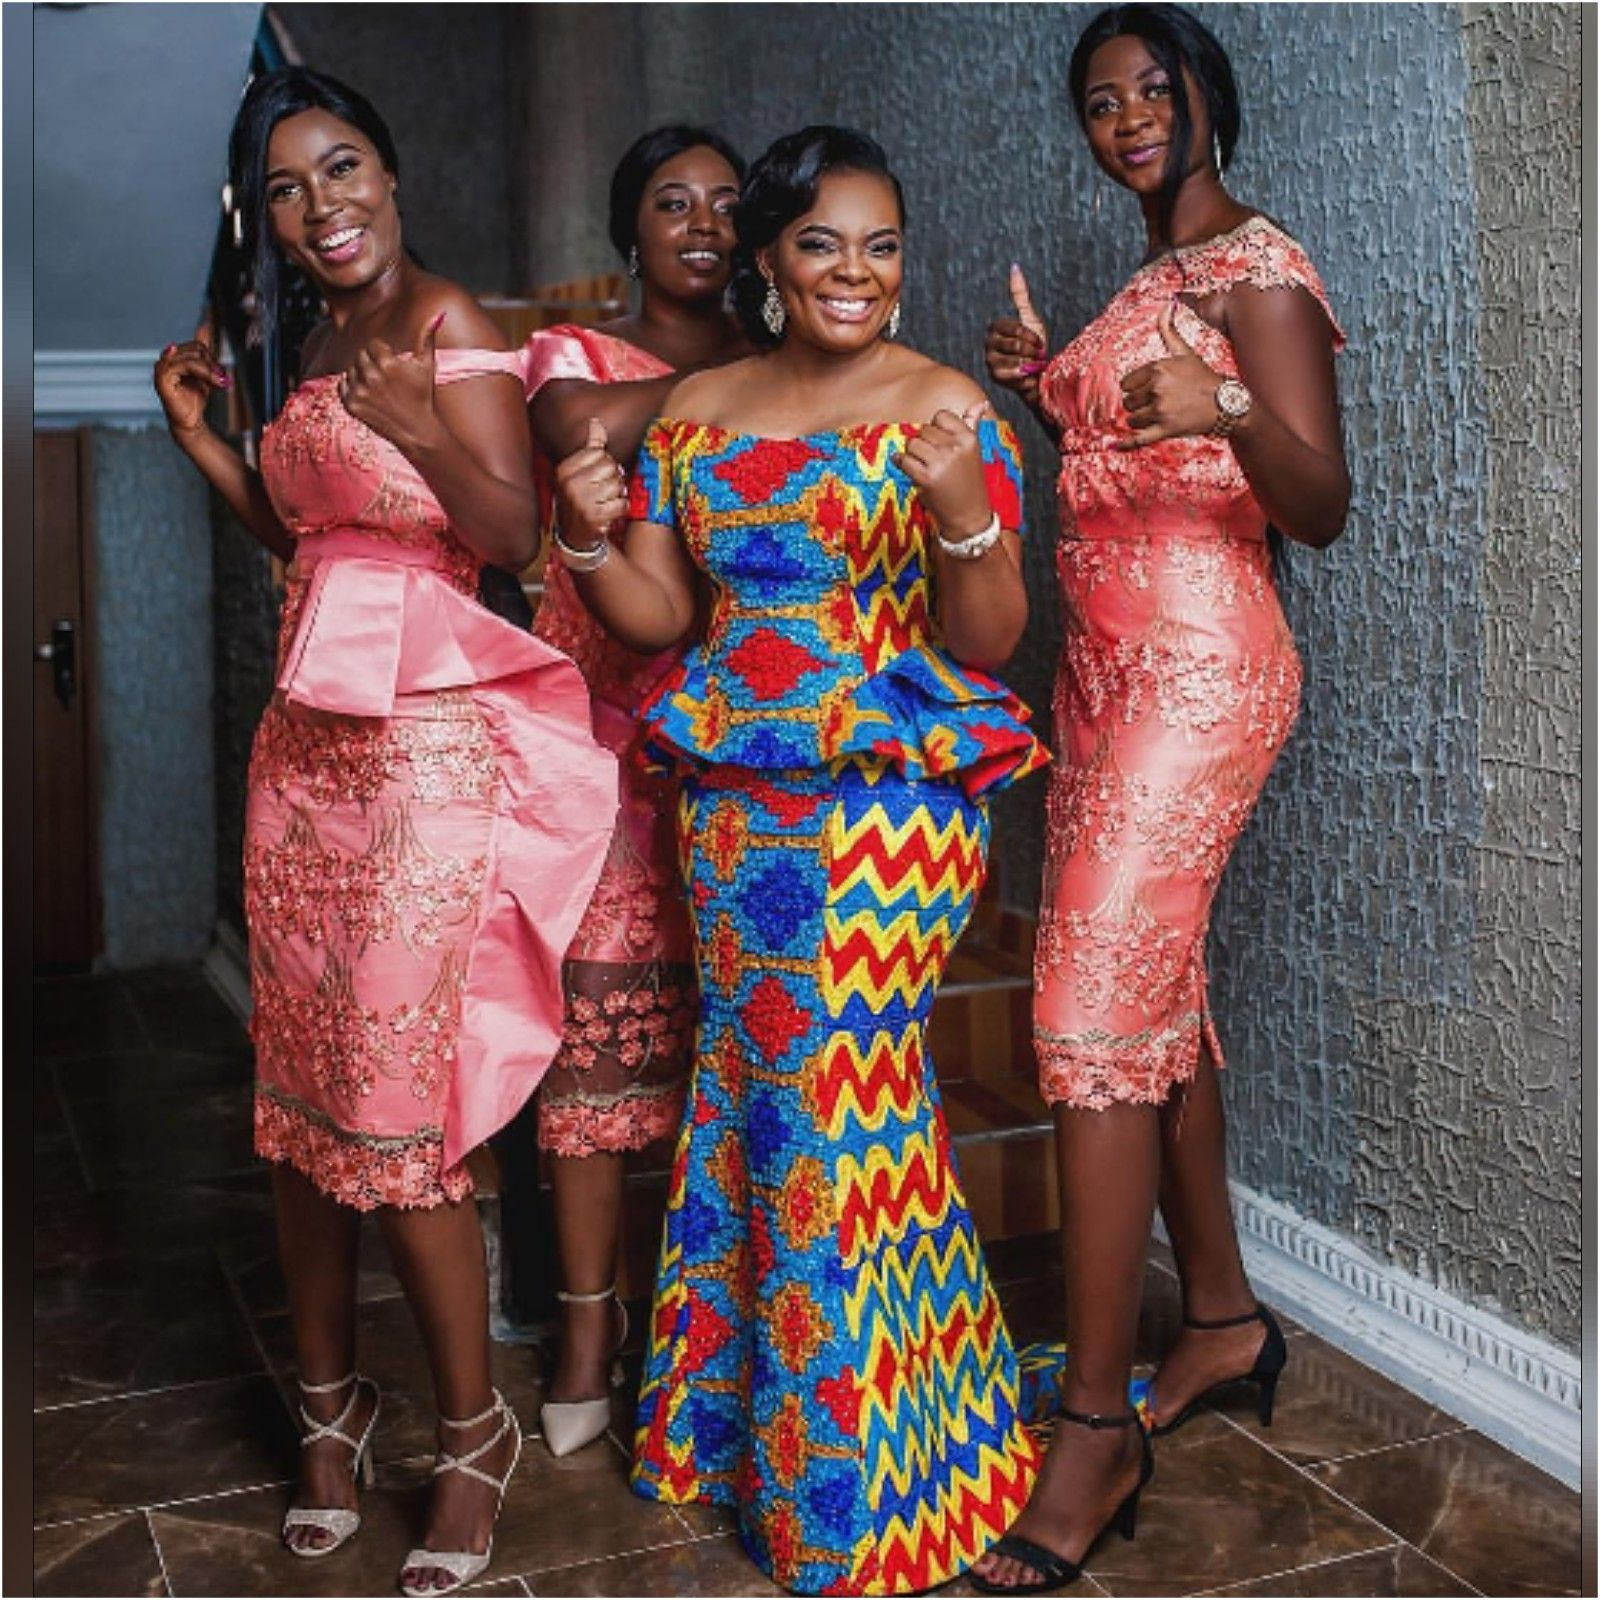 70 Latest Kente Styles For Engagements 2019 Fashenista In 2020 Kente Styles African Fashion Traditional Kente Dress